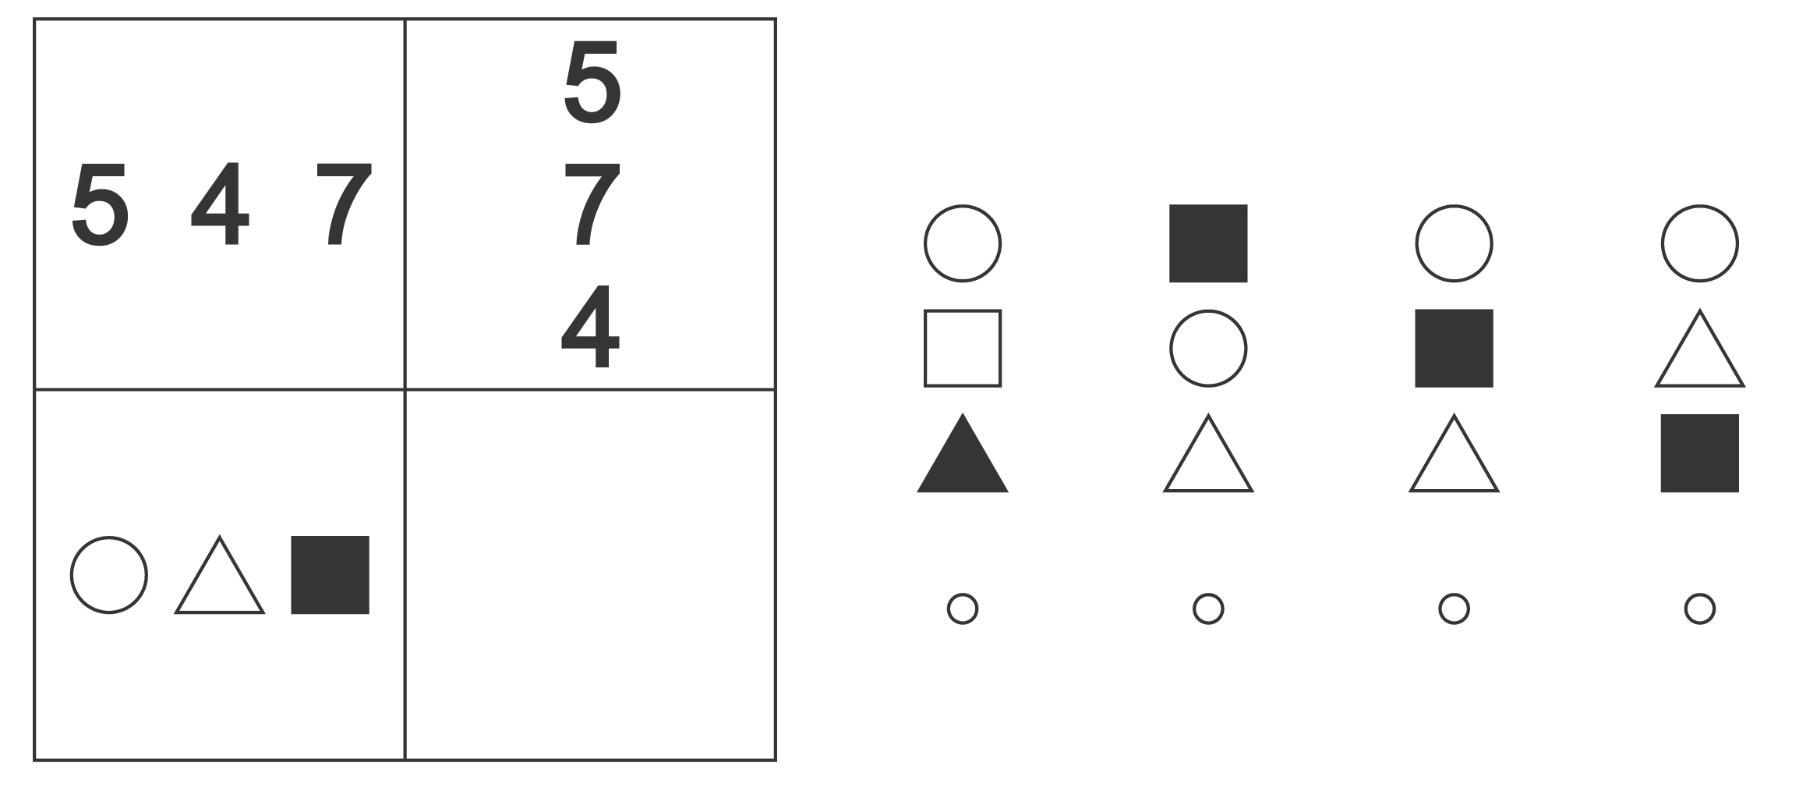 Sample Ted Test Questions 4th Grade